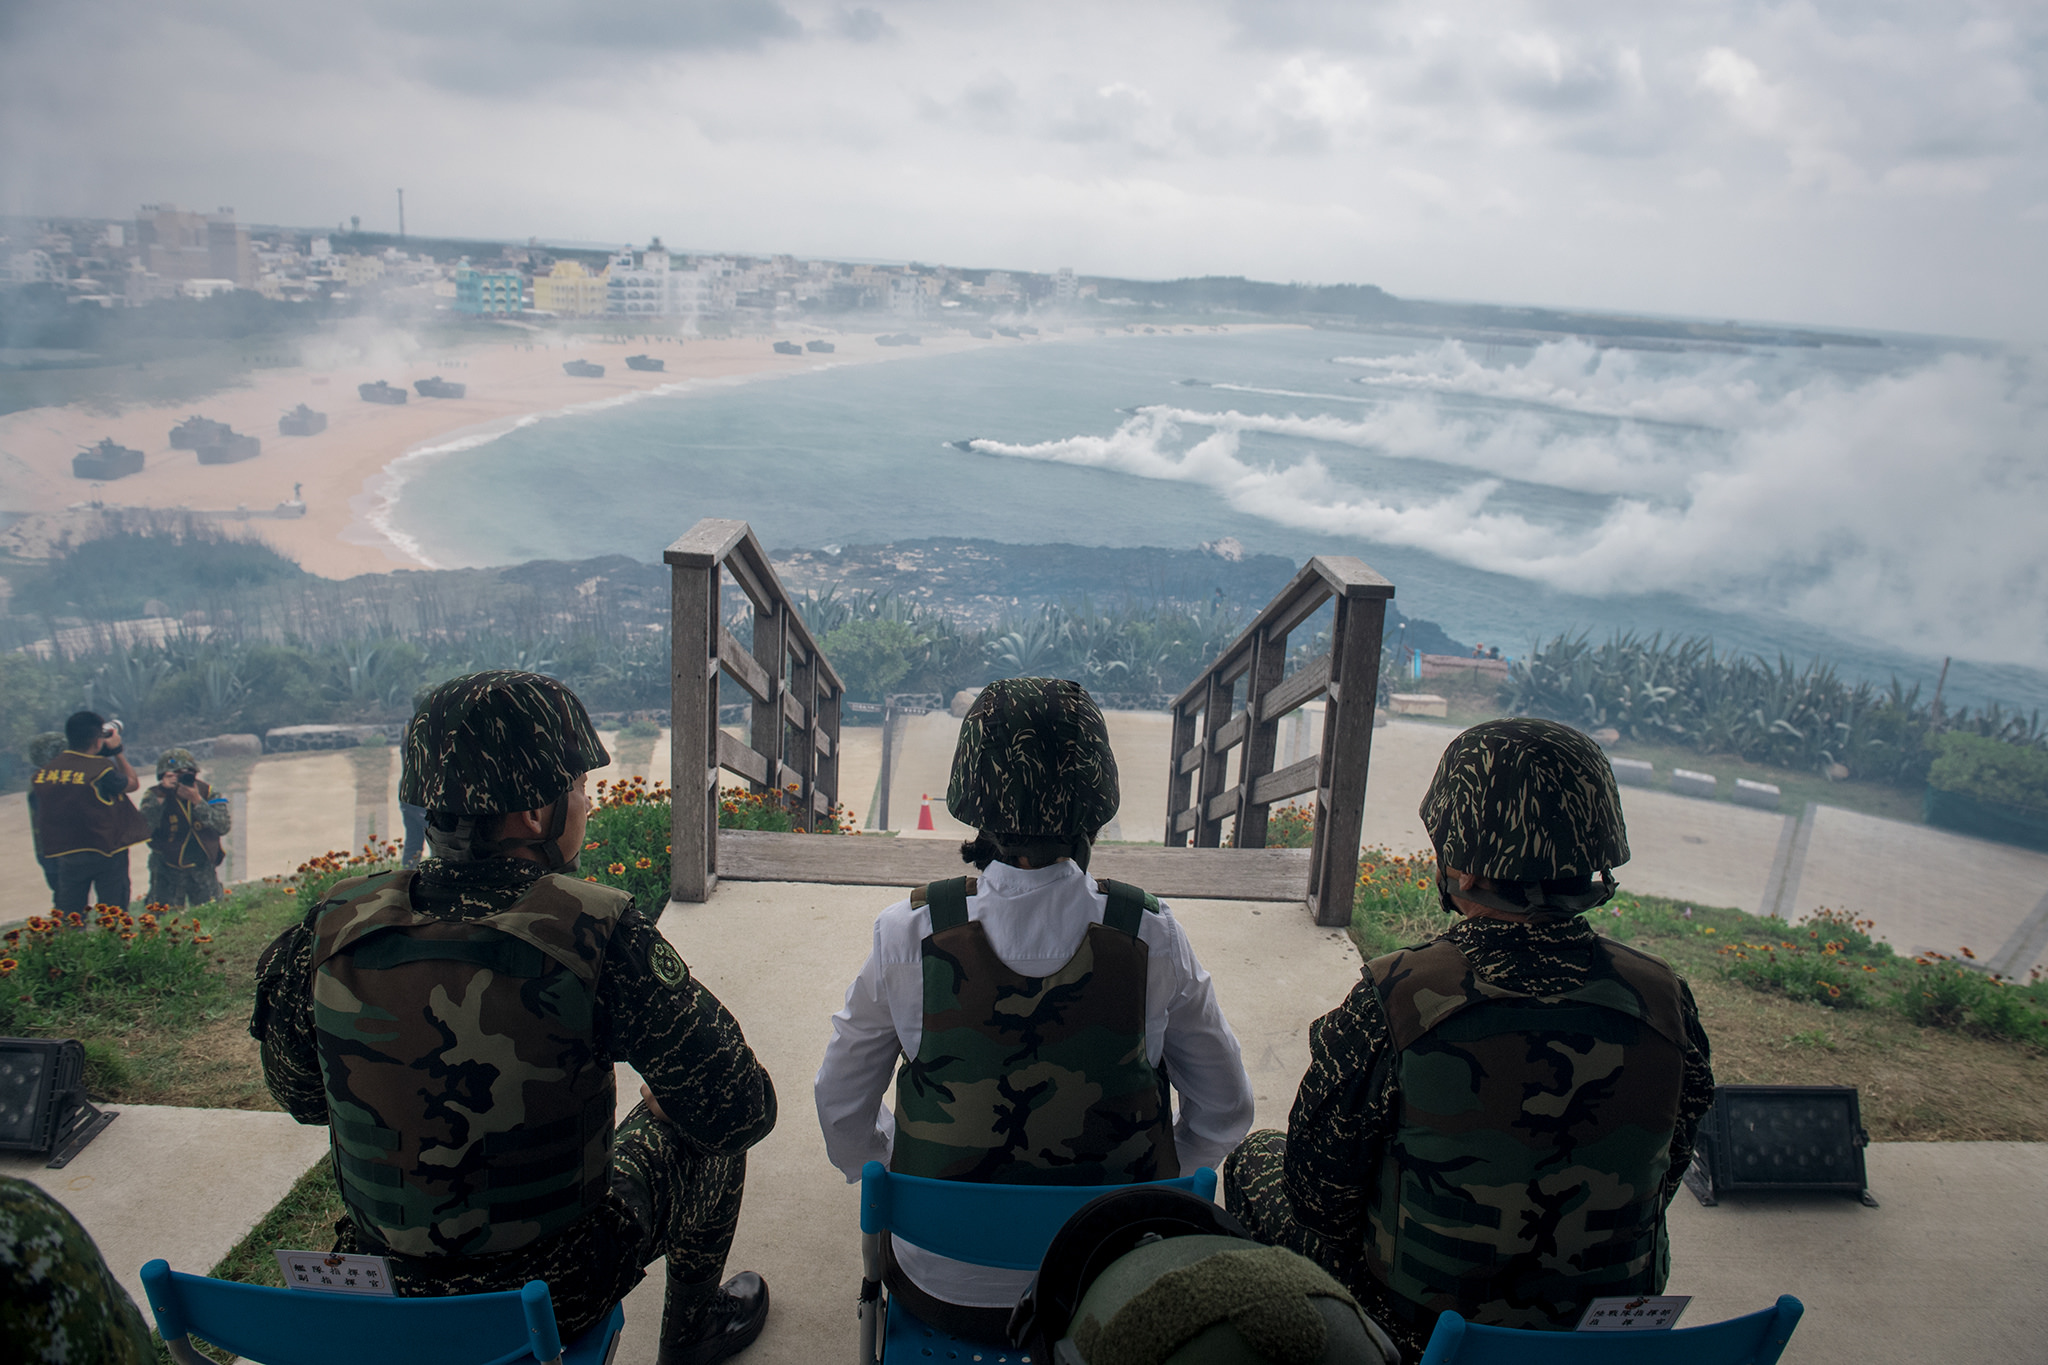 President Tsai observing the 33rd Han Kuang exercises. Since 2003, the U.S. has sent a member of the military to observe Taiwan's military exercises. However, the head of the U.S. delegation has always been a retired admiral. Photo courtesy of the Taiwan Presidential Office.